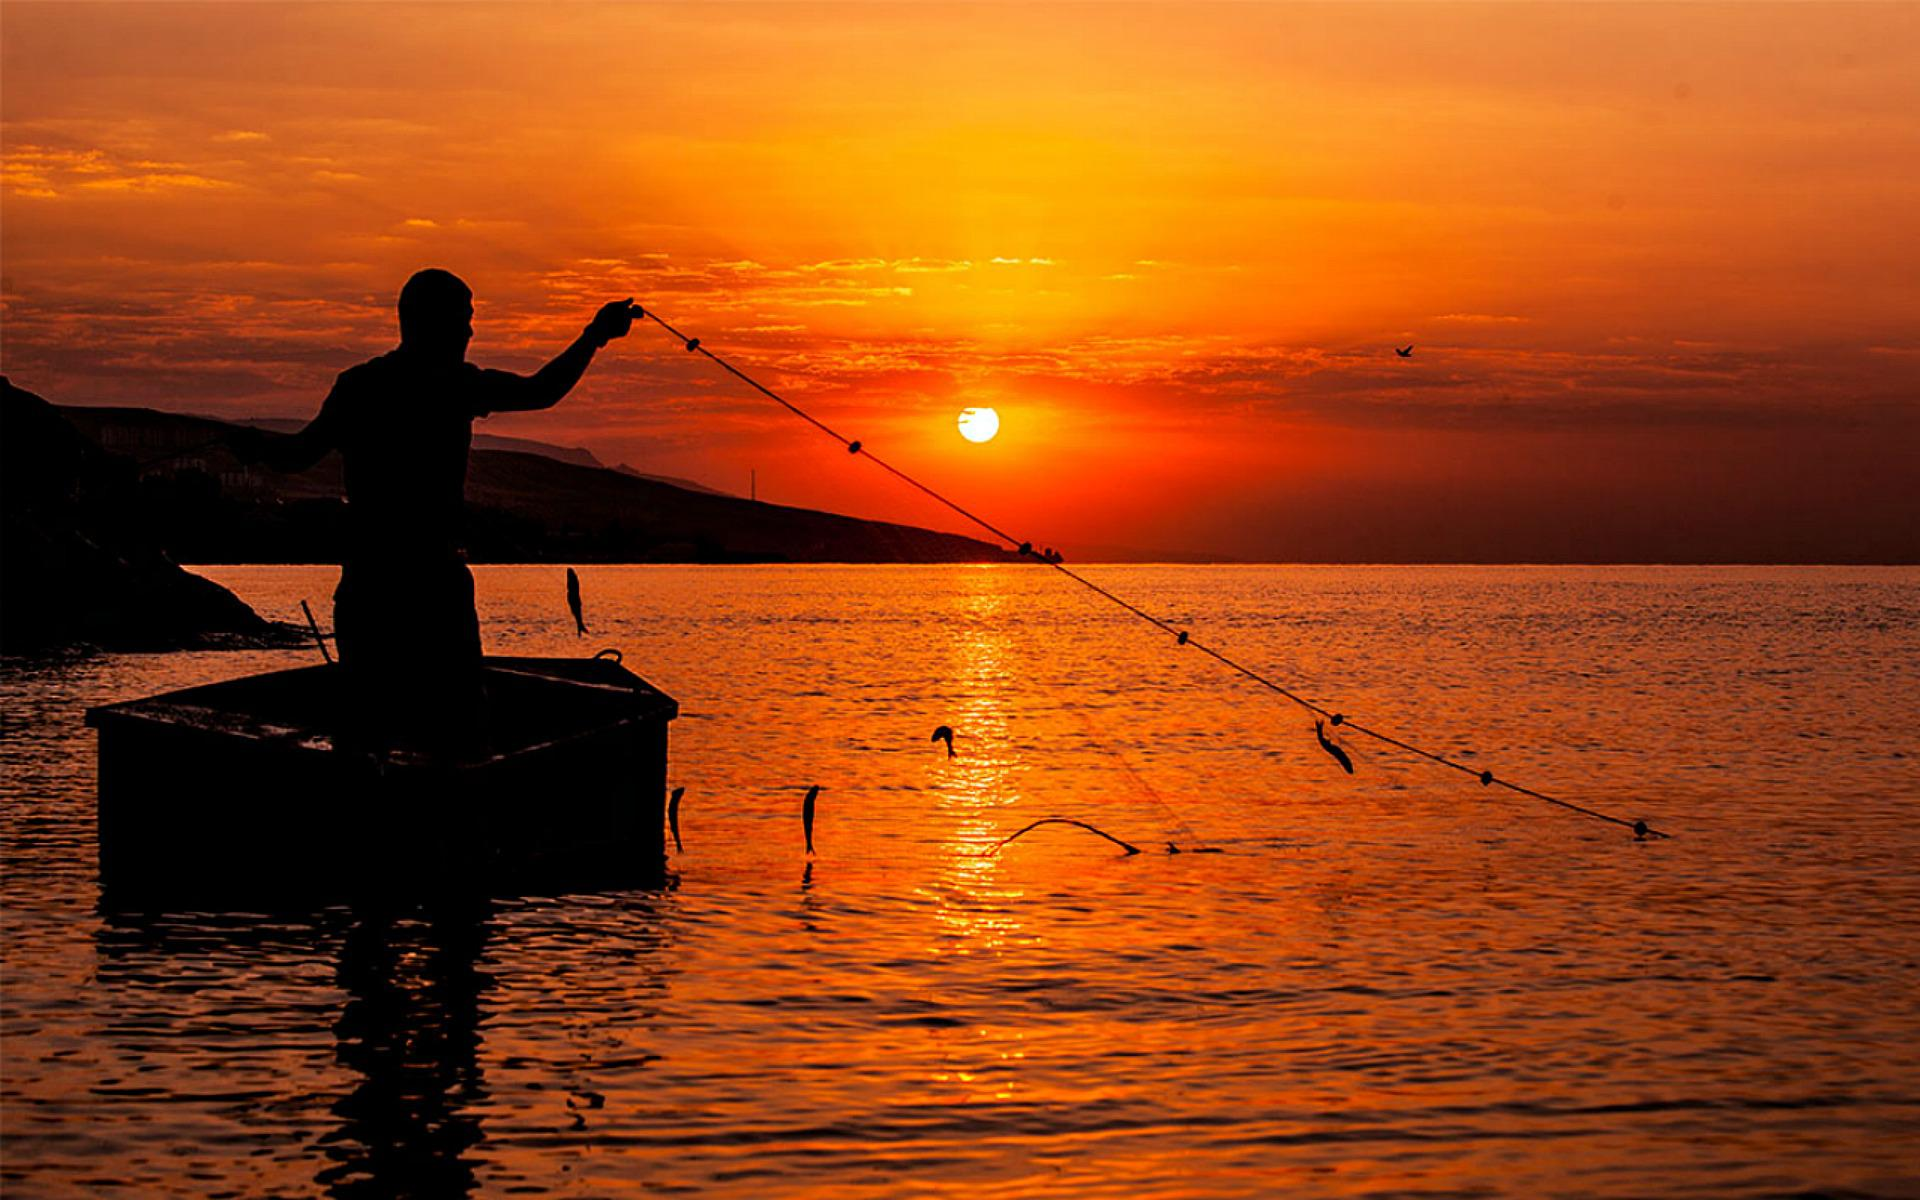 Fisherman at Sunset HQ Wallpaper